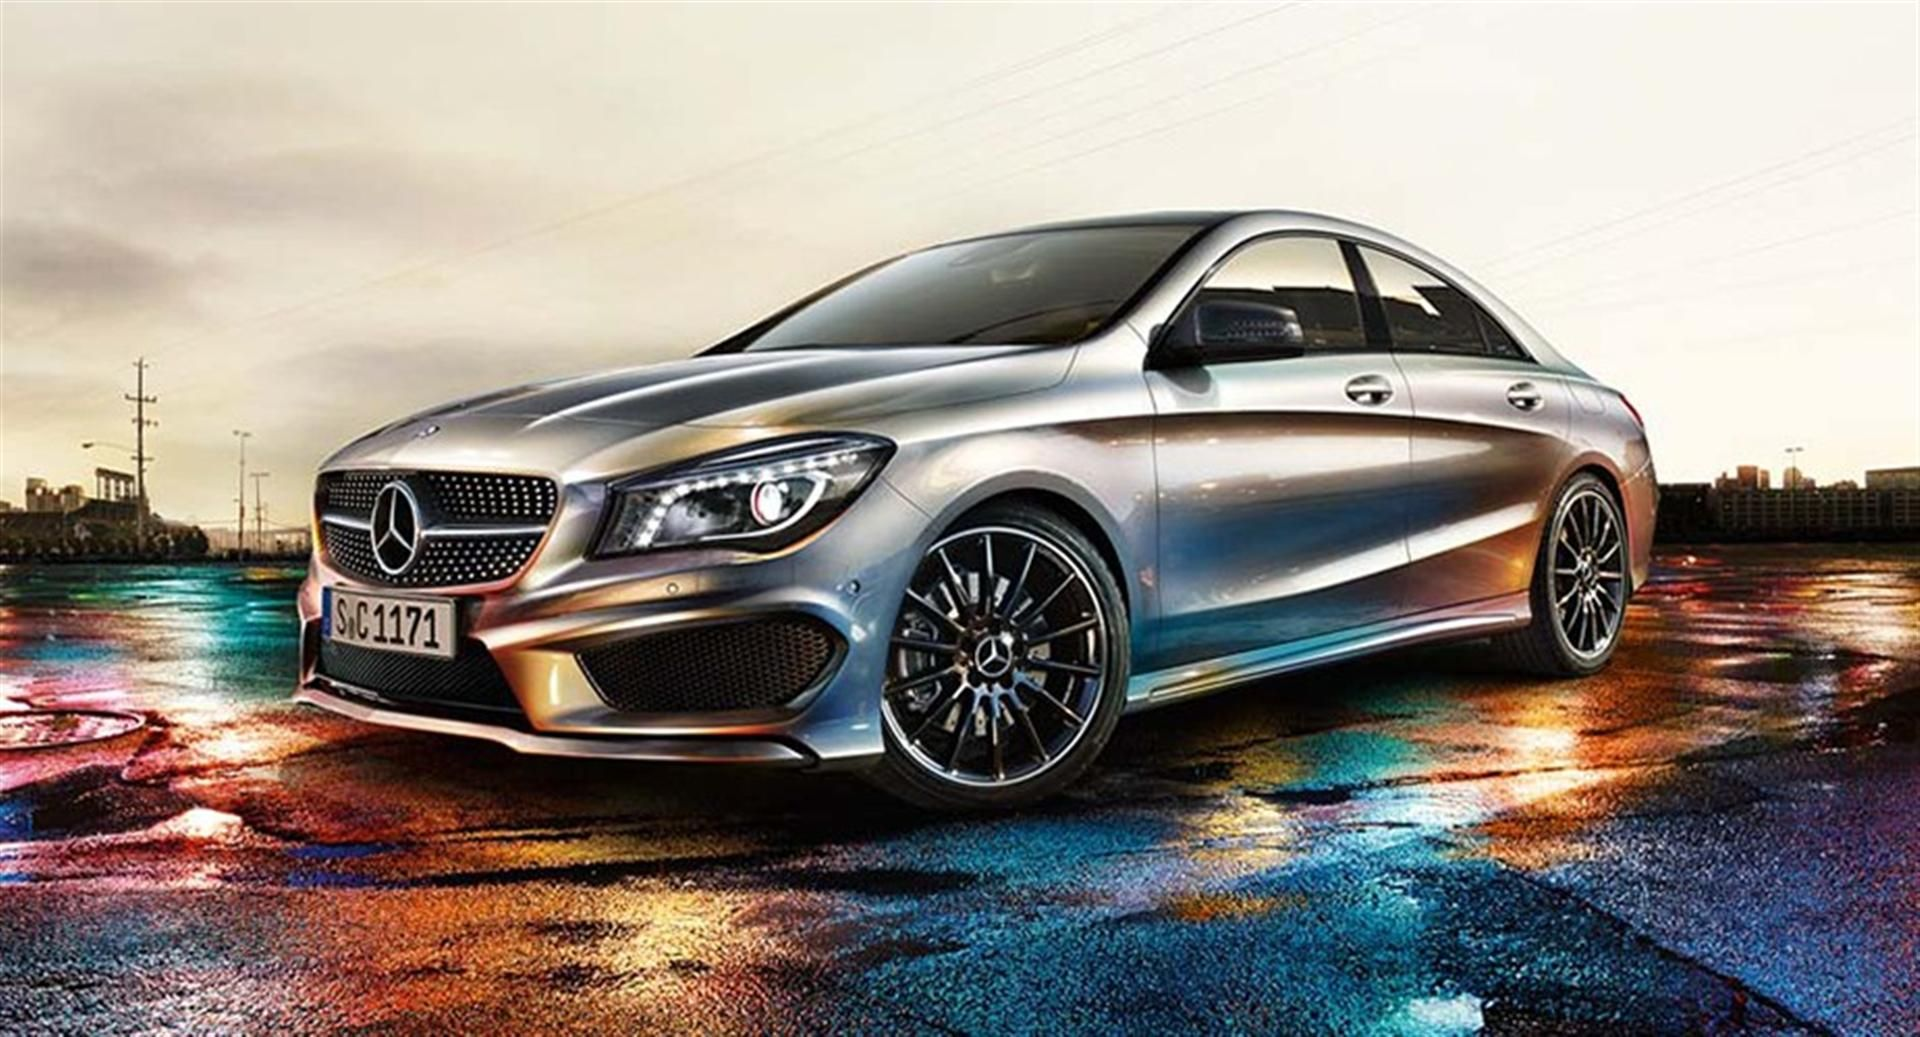 Pin By Evan Reilly On Gasoline And Sparks Cla 45 Amg